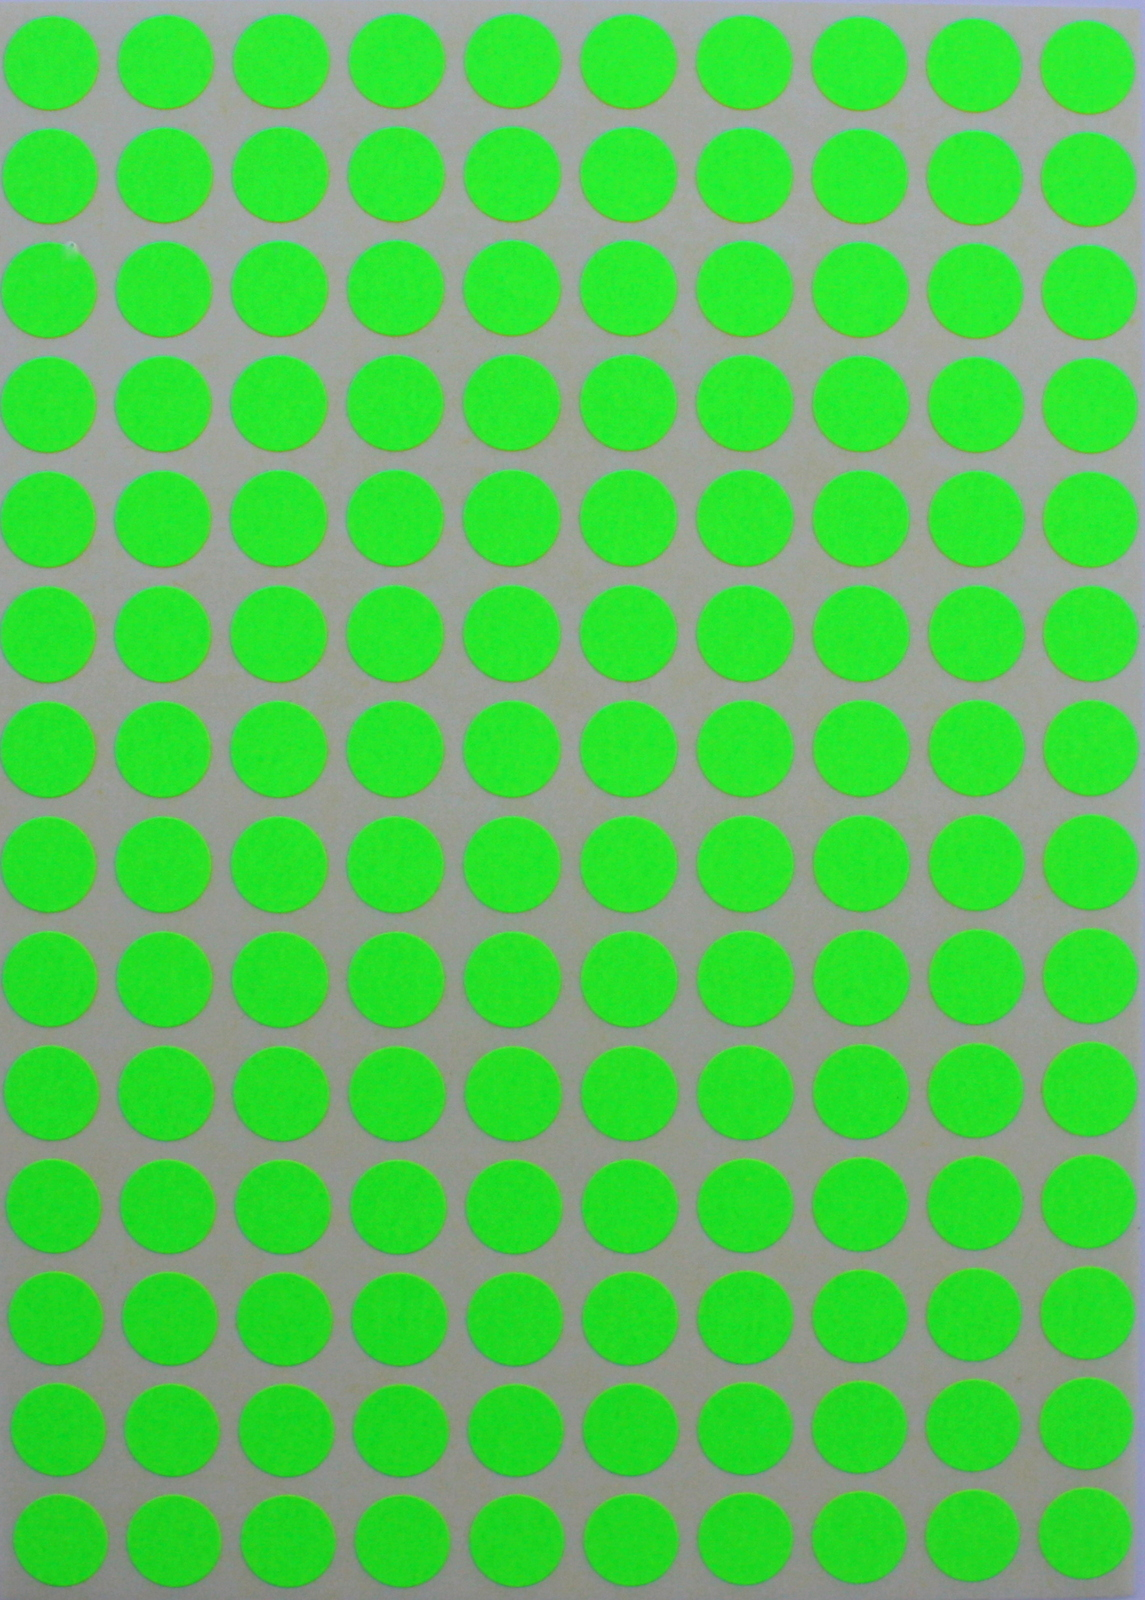 Color Coding Labels 3 8 Quot Round 10 Mm Dot Stickers0 375 Inch Rounds Neon Green Other Shipping